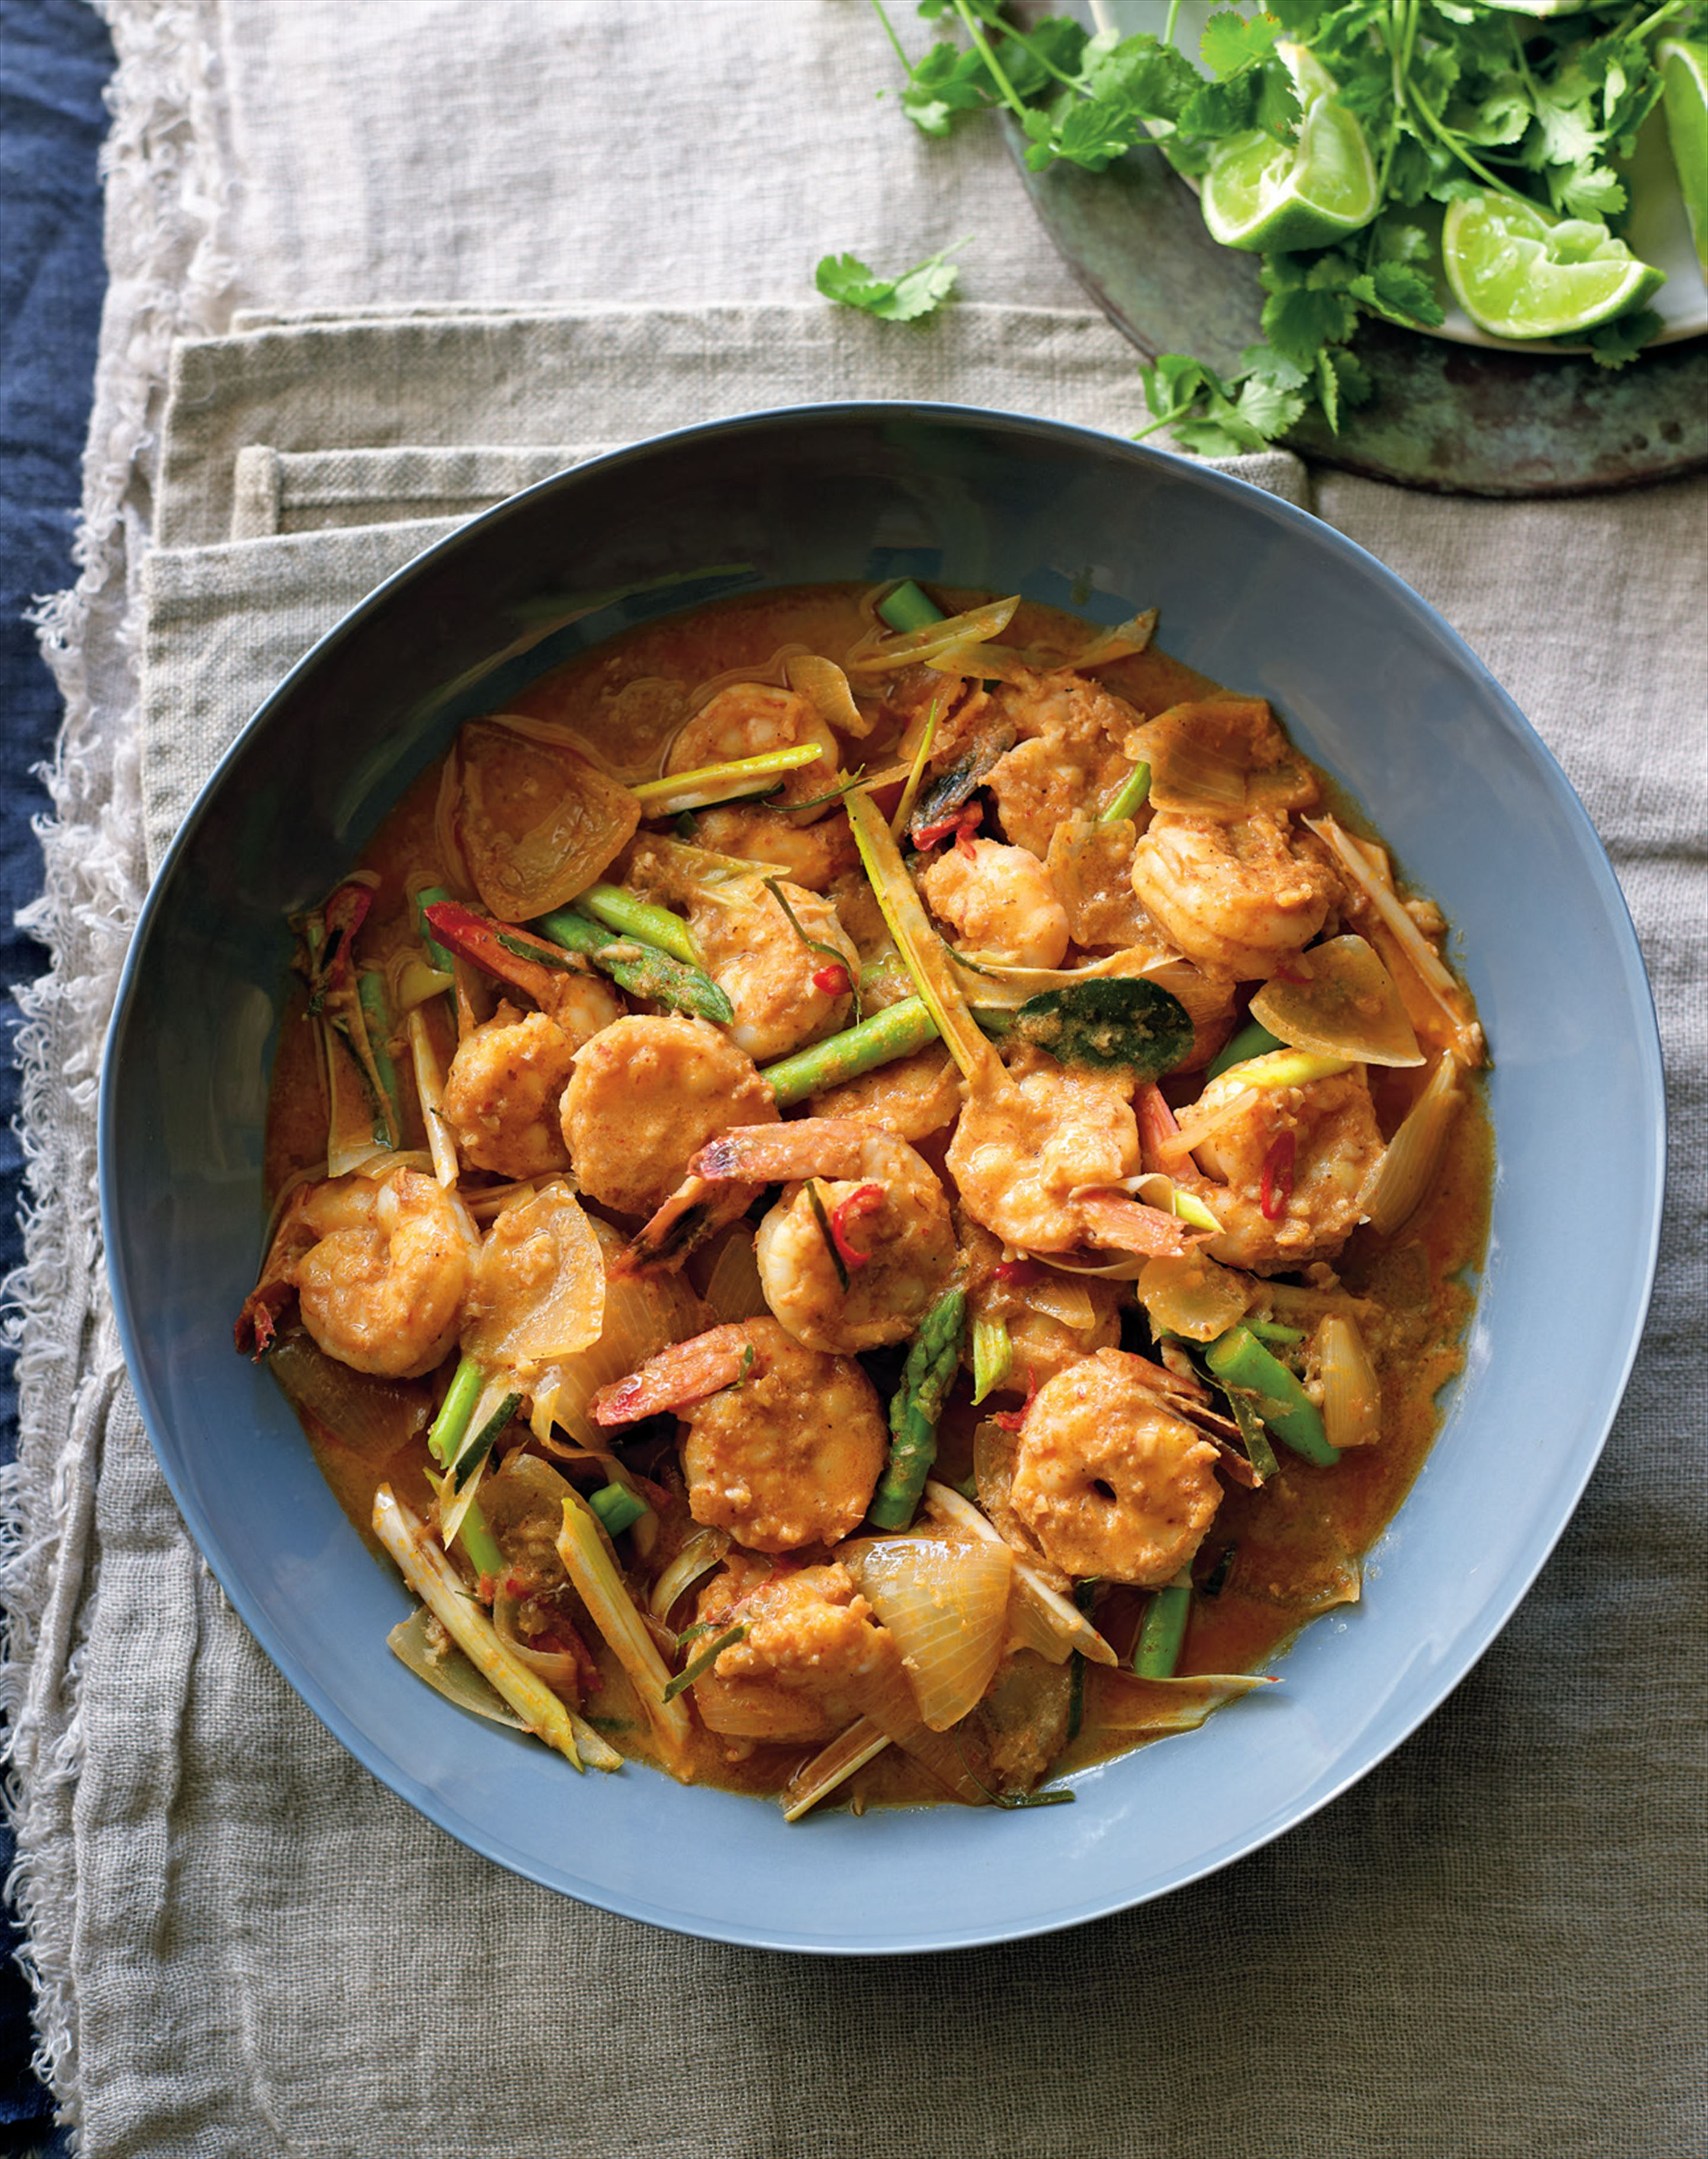 Prawn and asparagus red curry